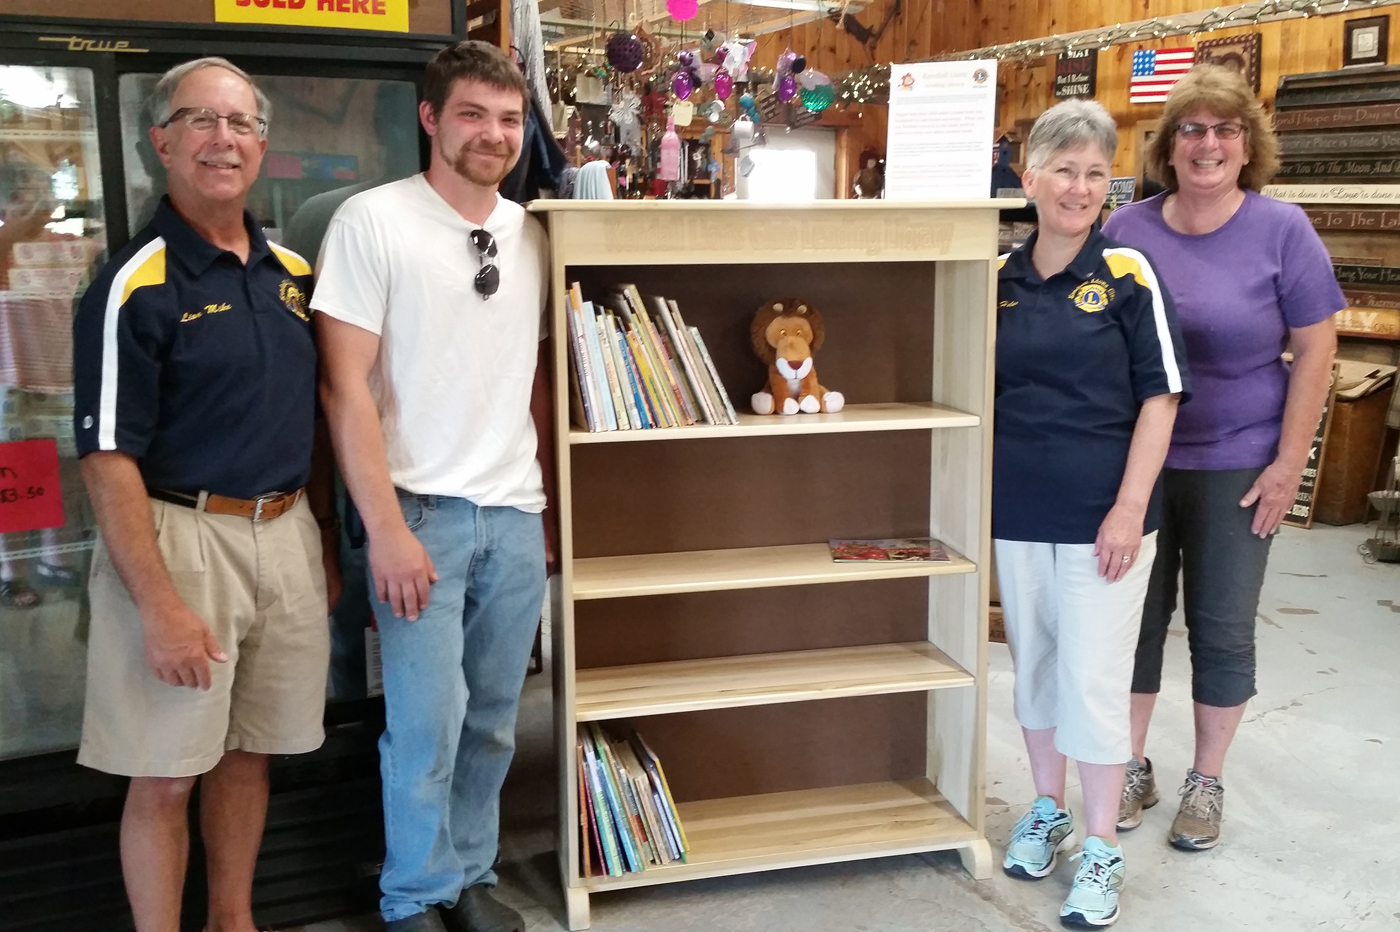 Standing with the new bookshelf (l to r): Incoming Lion President Michael Cusimano, Cabinetmaker Greg Meisenzahl, Lion Helen Unterborn and Lora Partyka. Provided photo